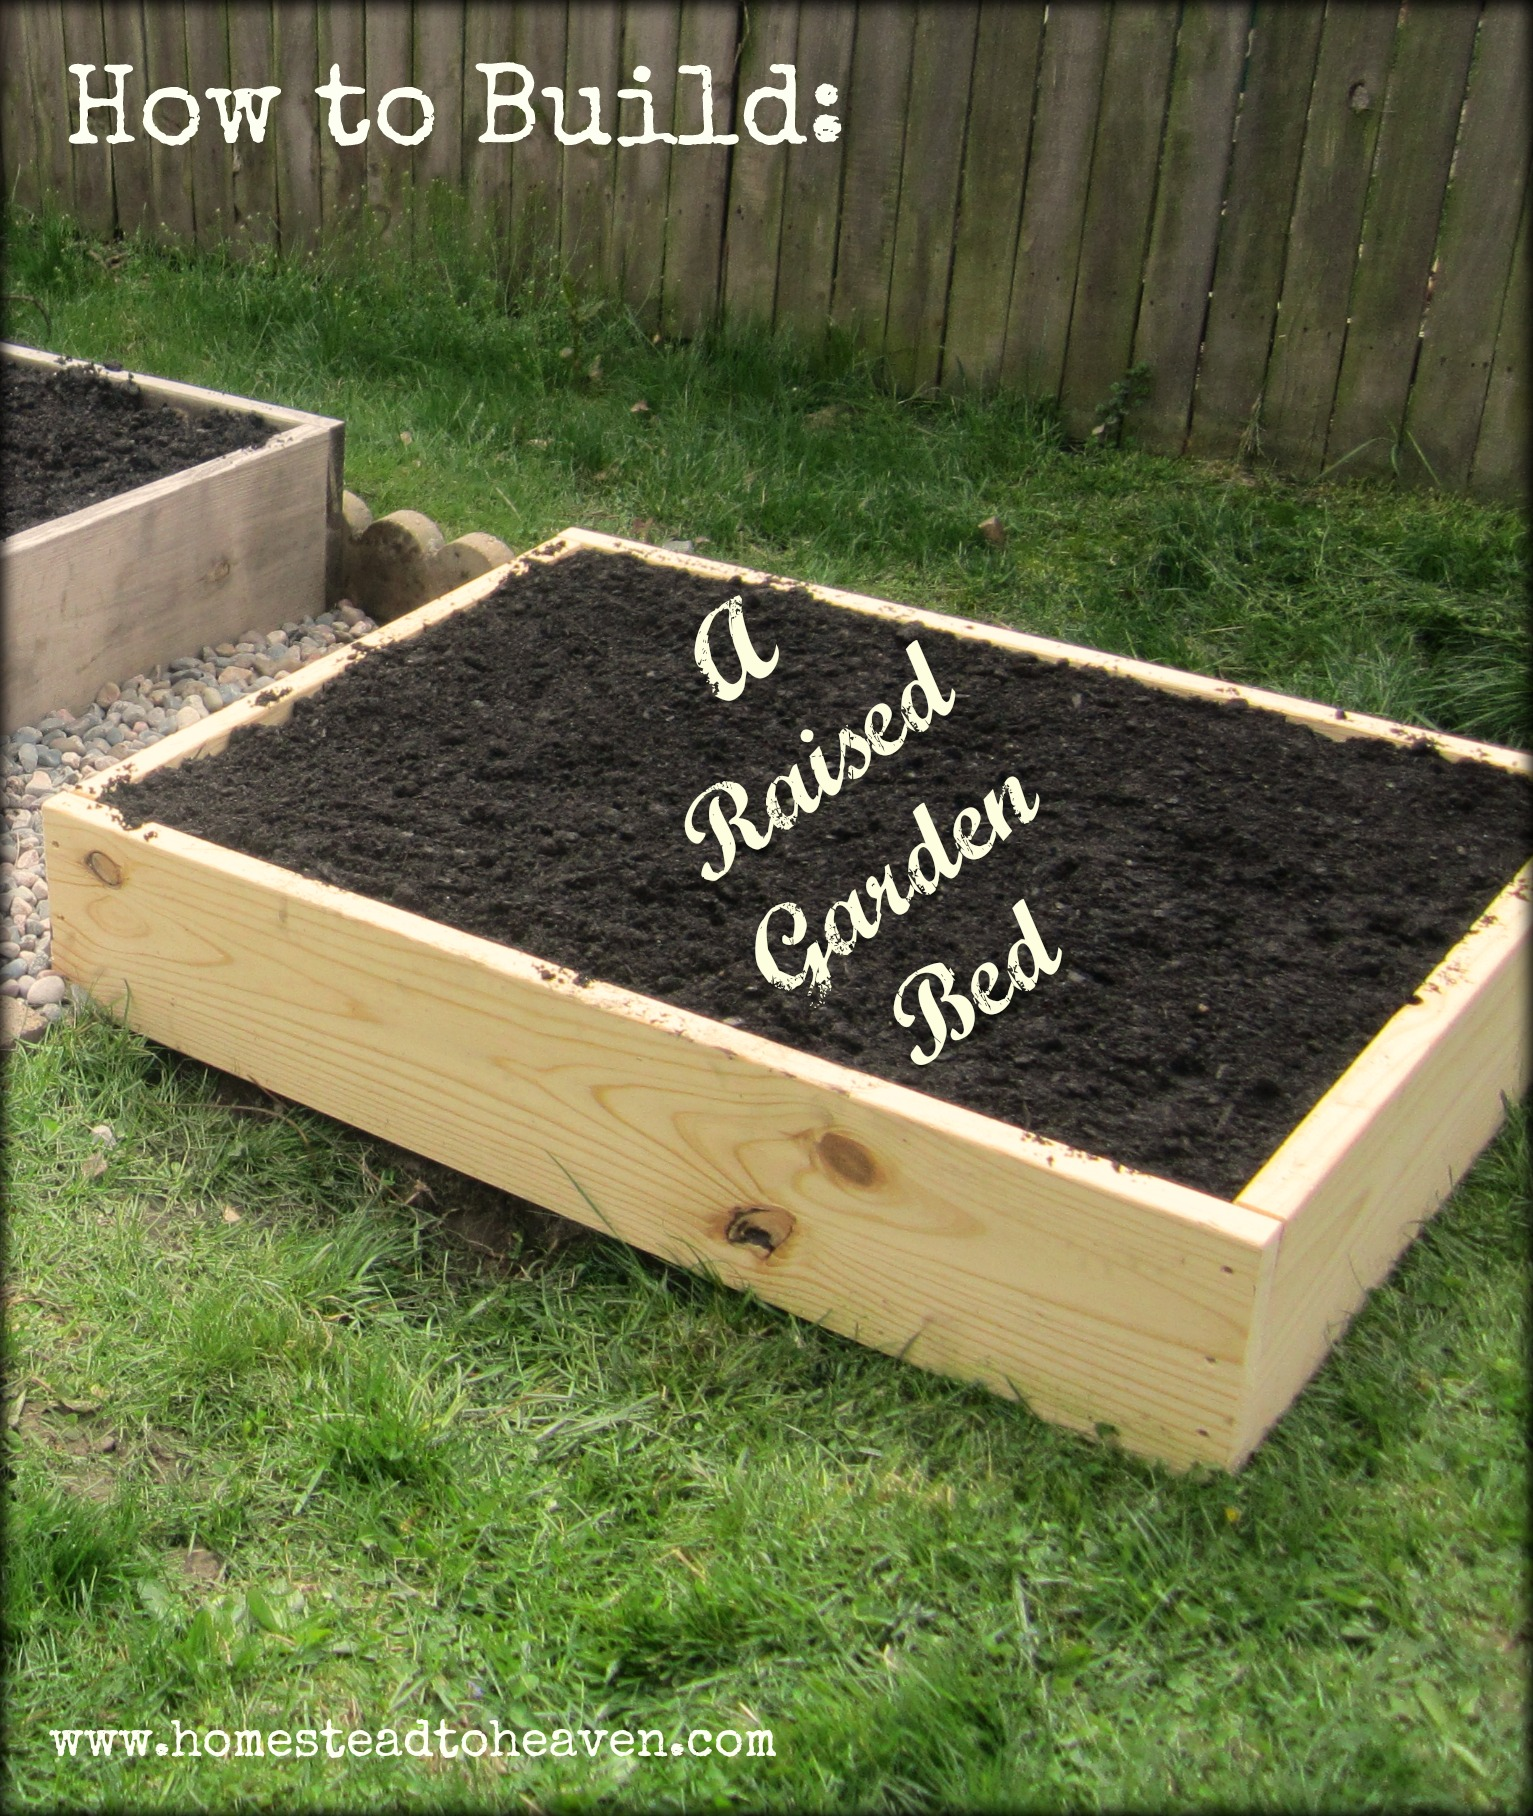 how to build a raised garden bed homestead to heaven